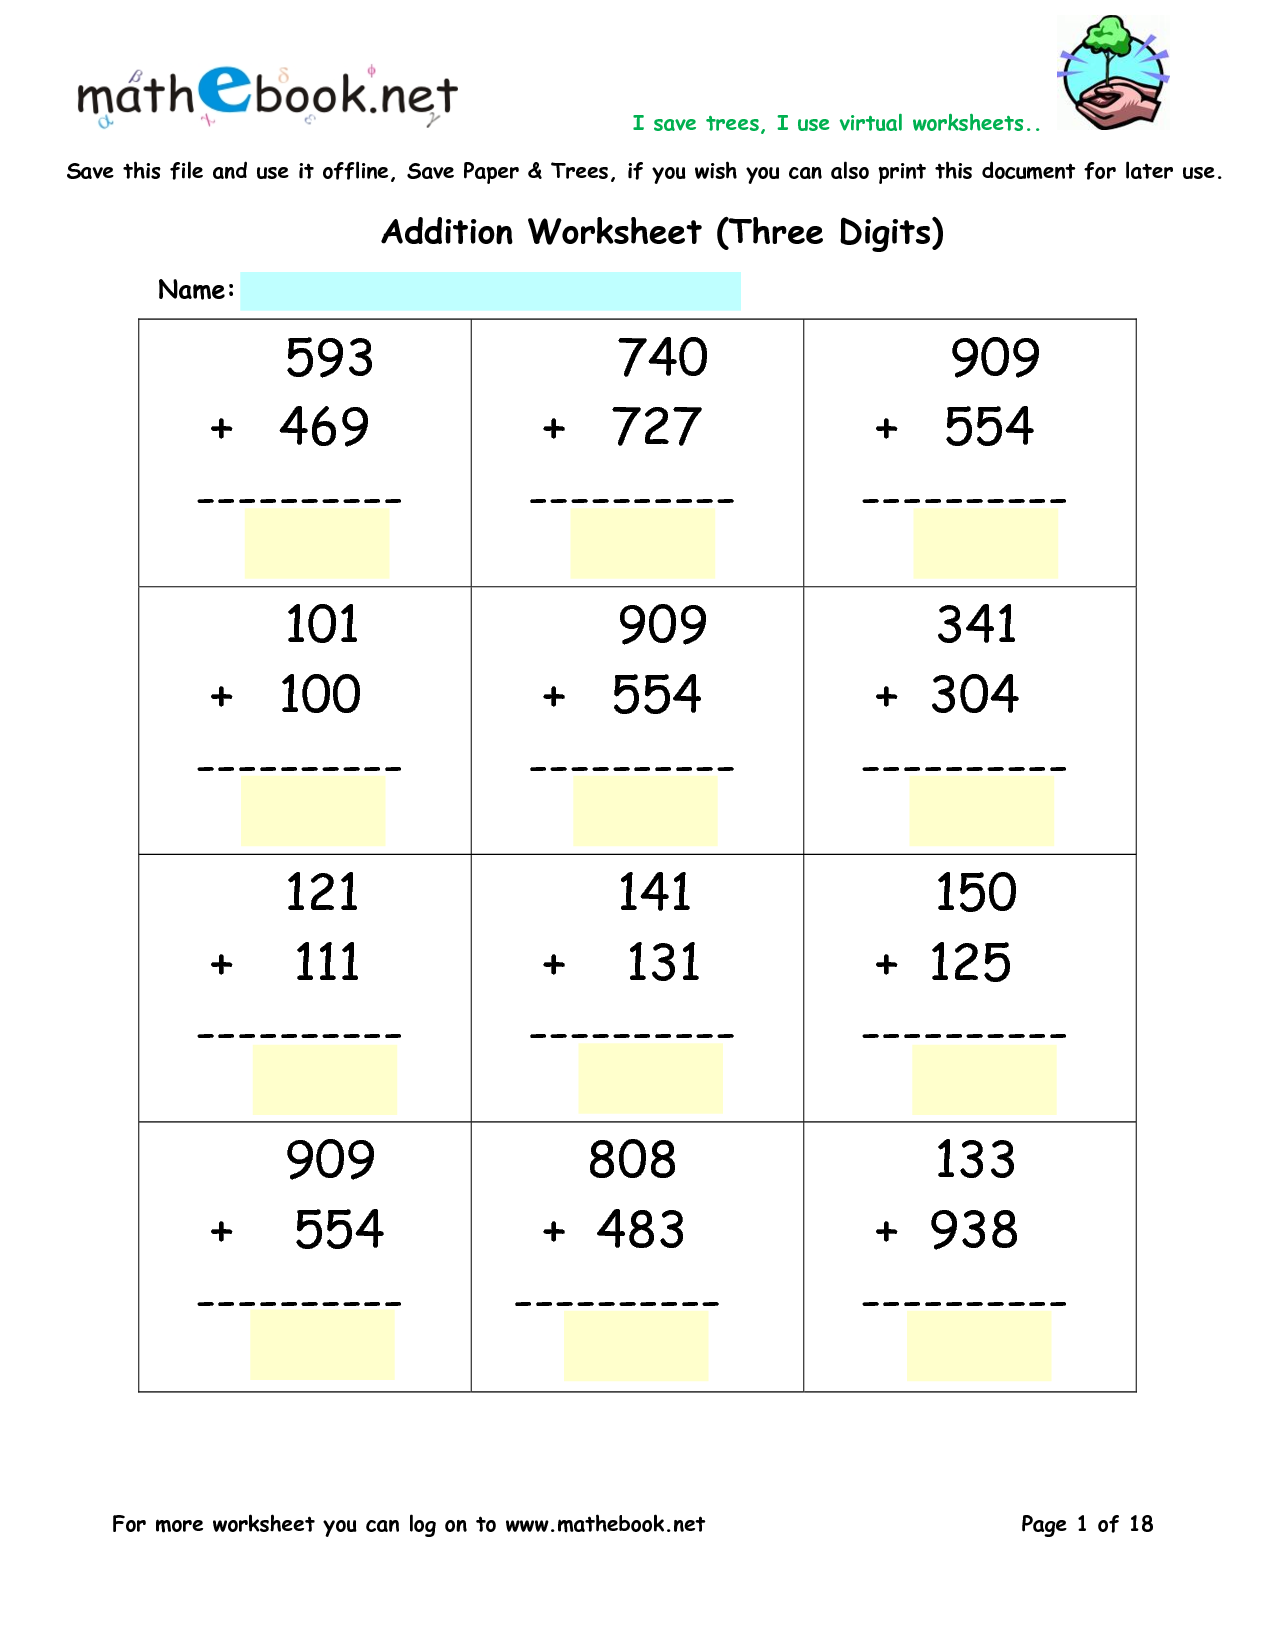 Addition Worksheets – 3 Digit Addition Worksheets Free